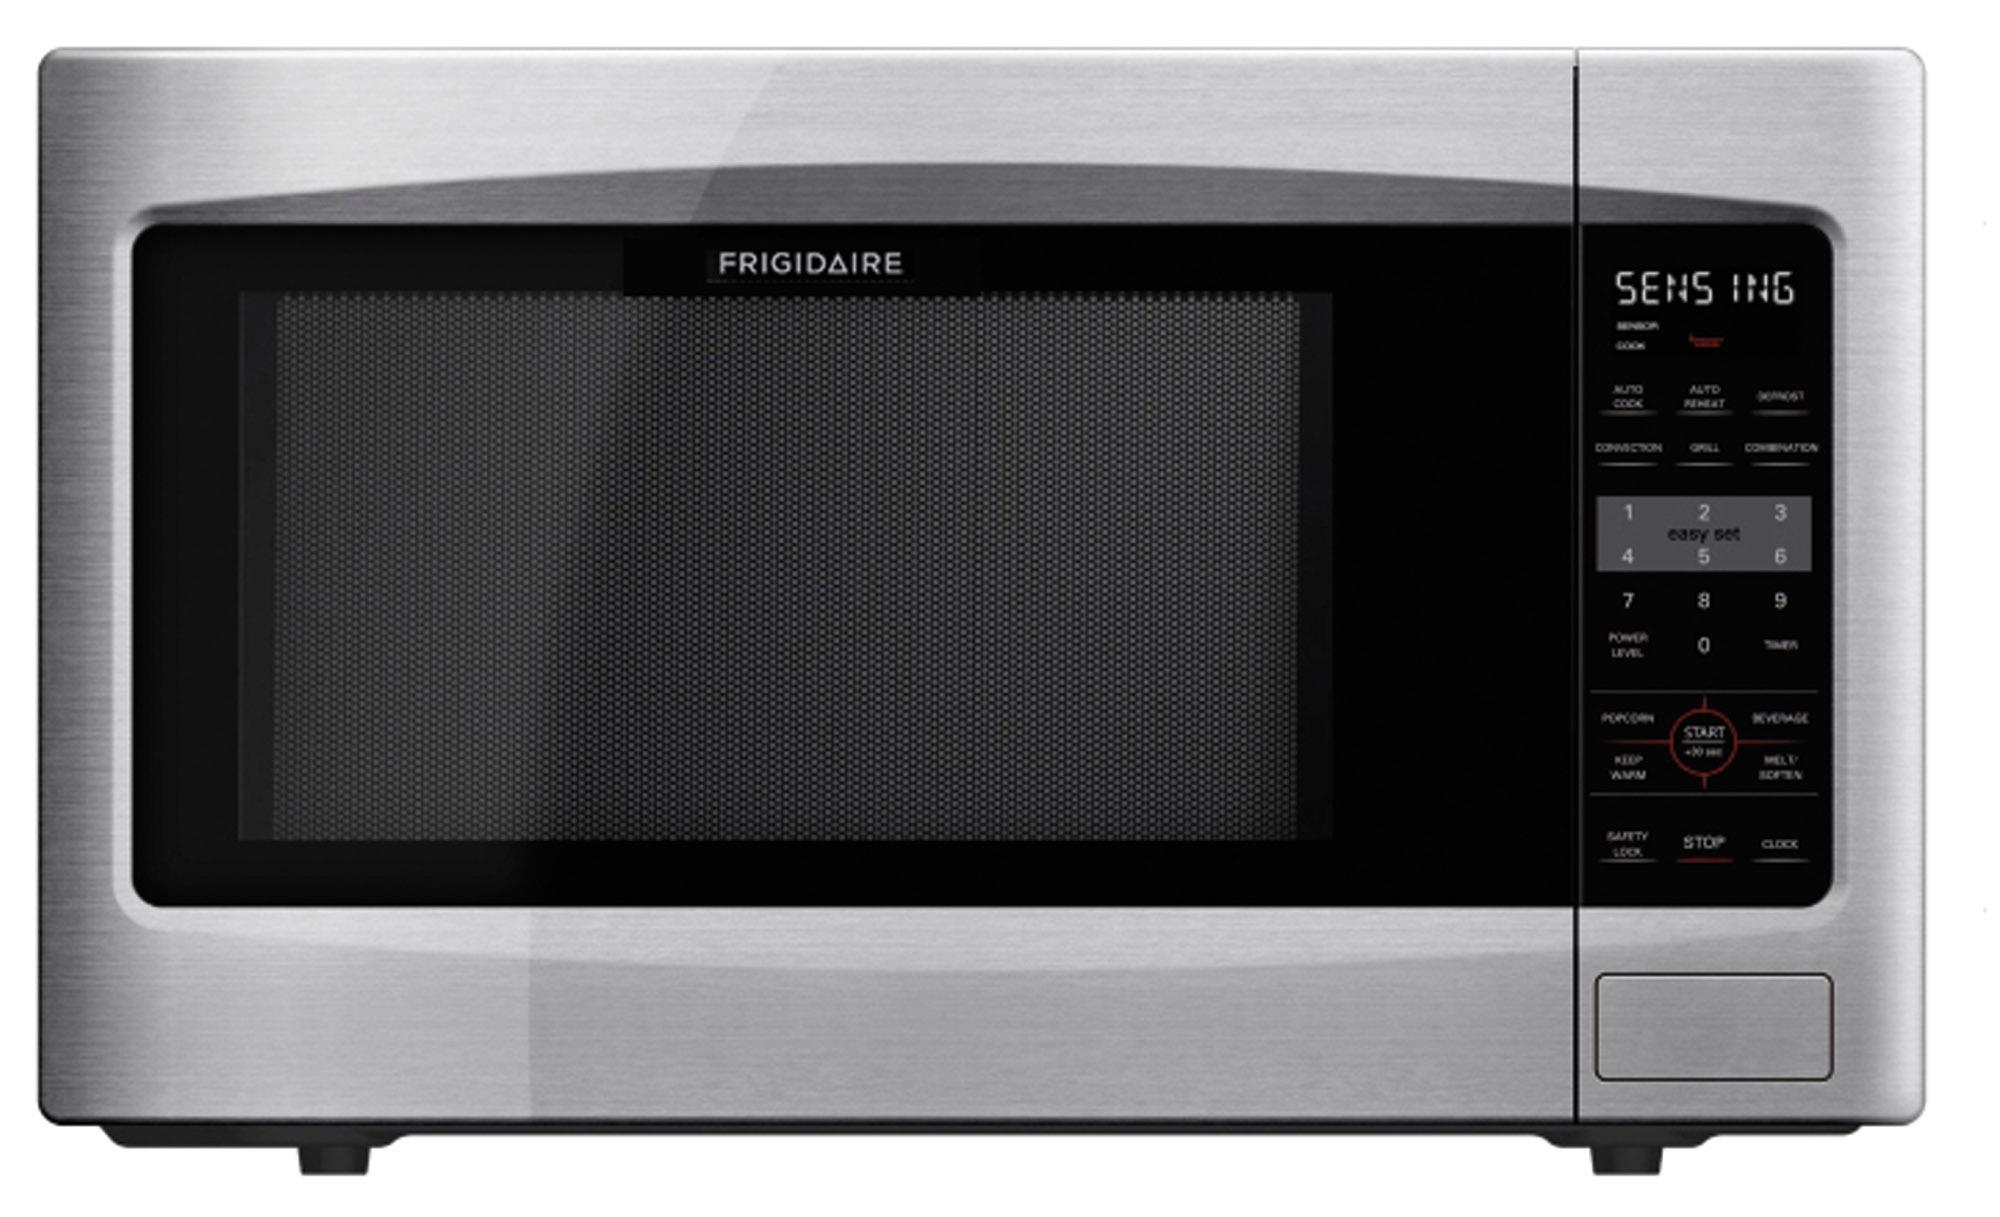 Frigidaire Microwaves 2.2 Cu. Ft. Countertop Microwave - Item Number: FFCE2278LS